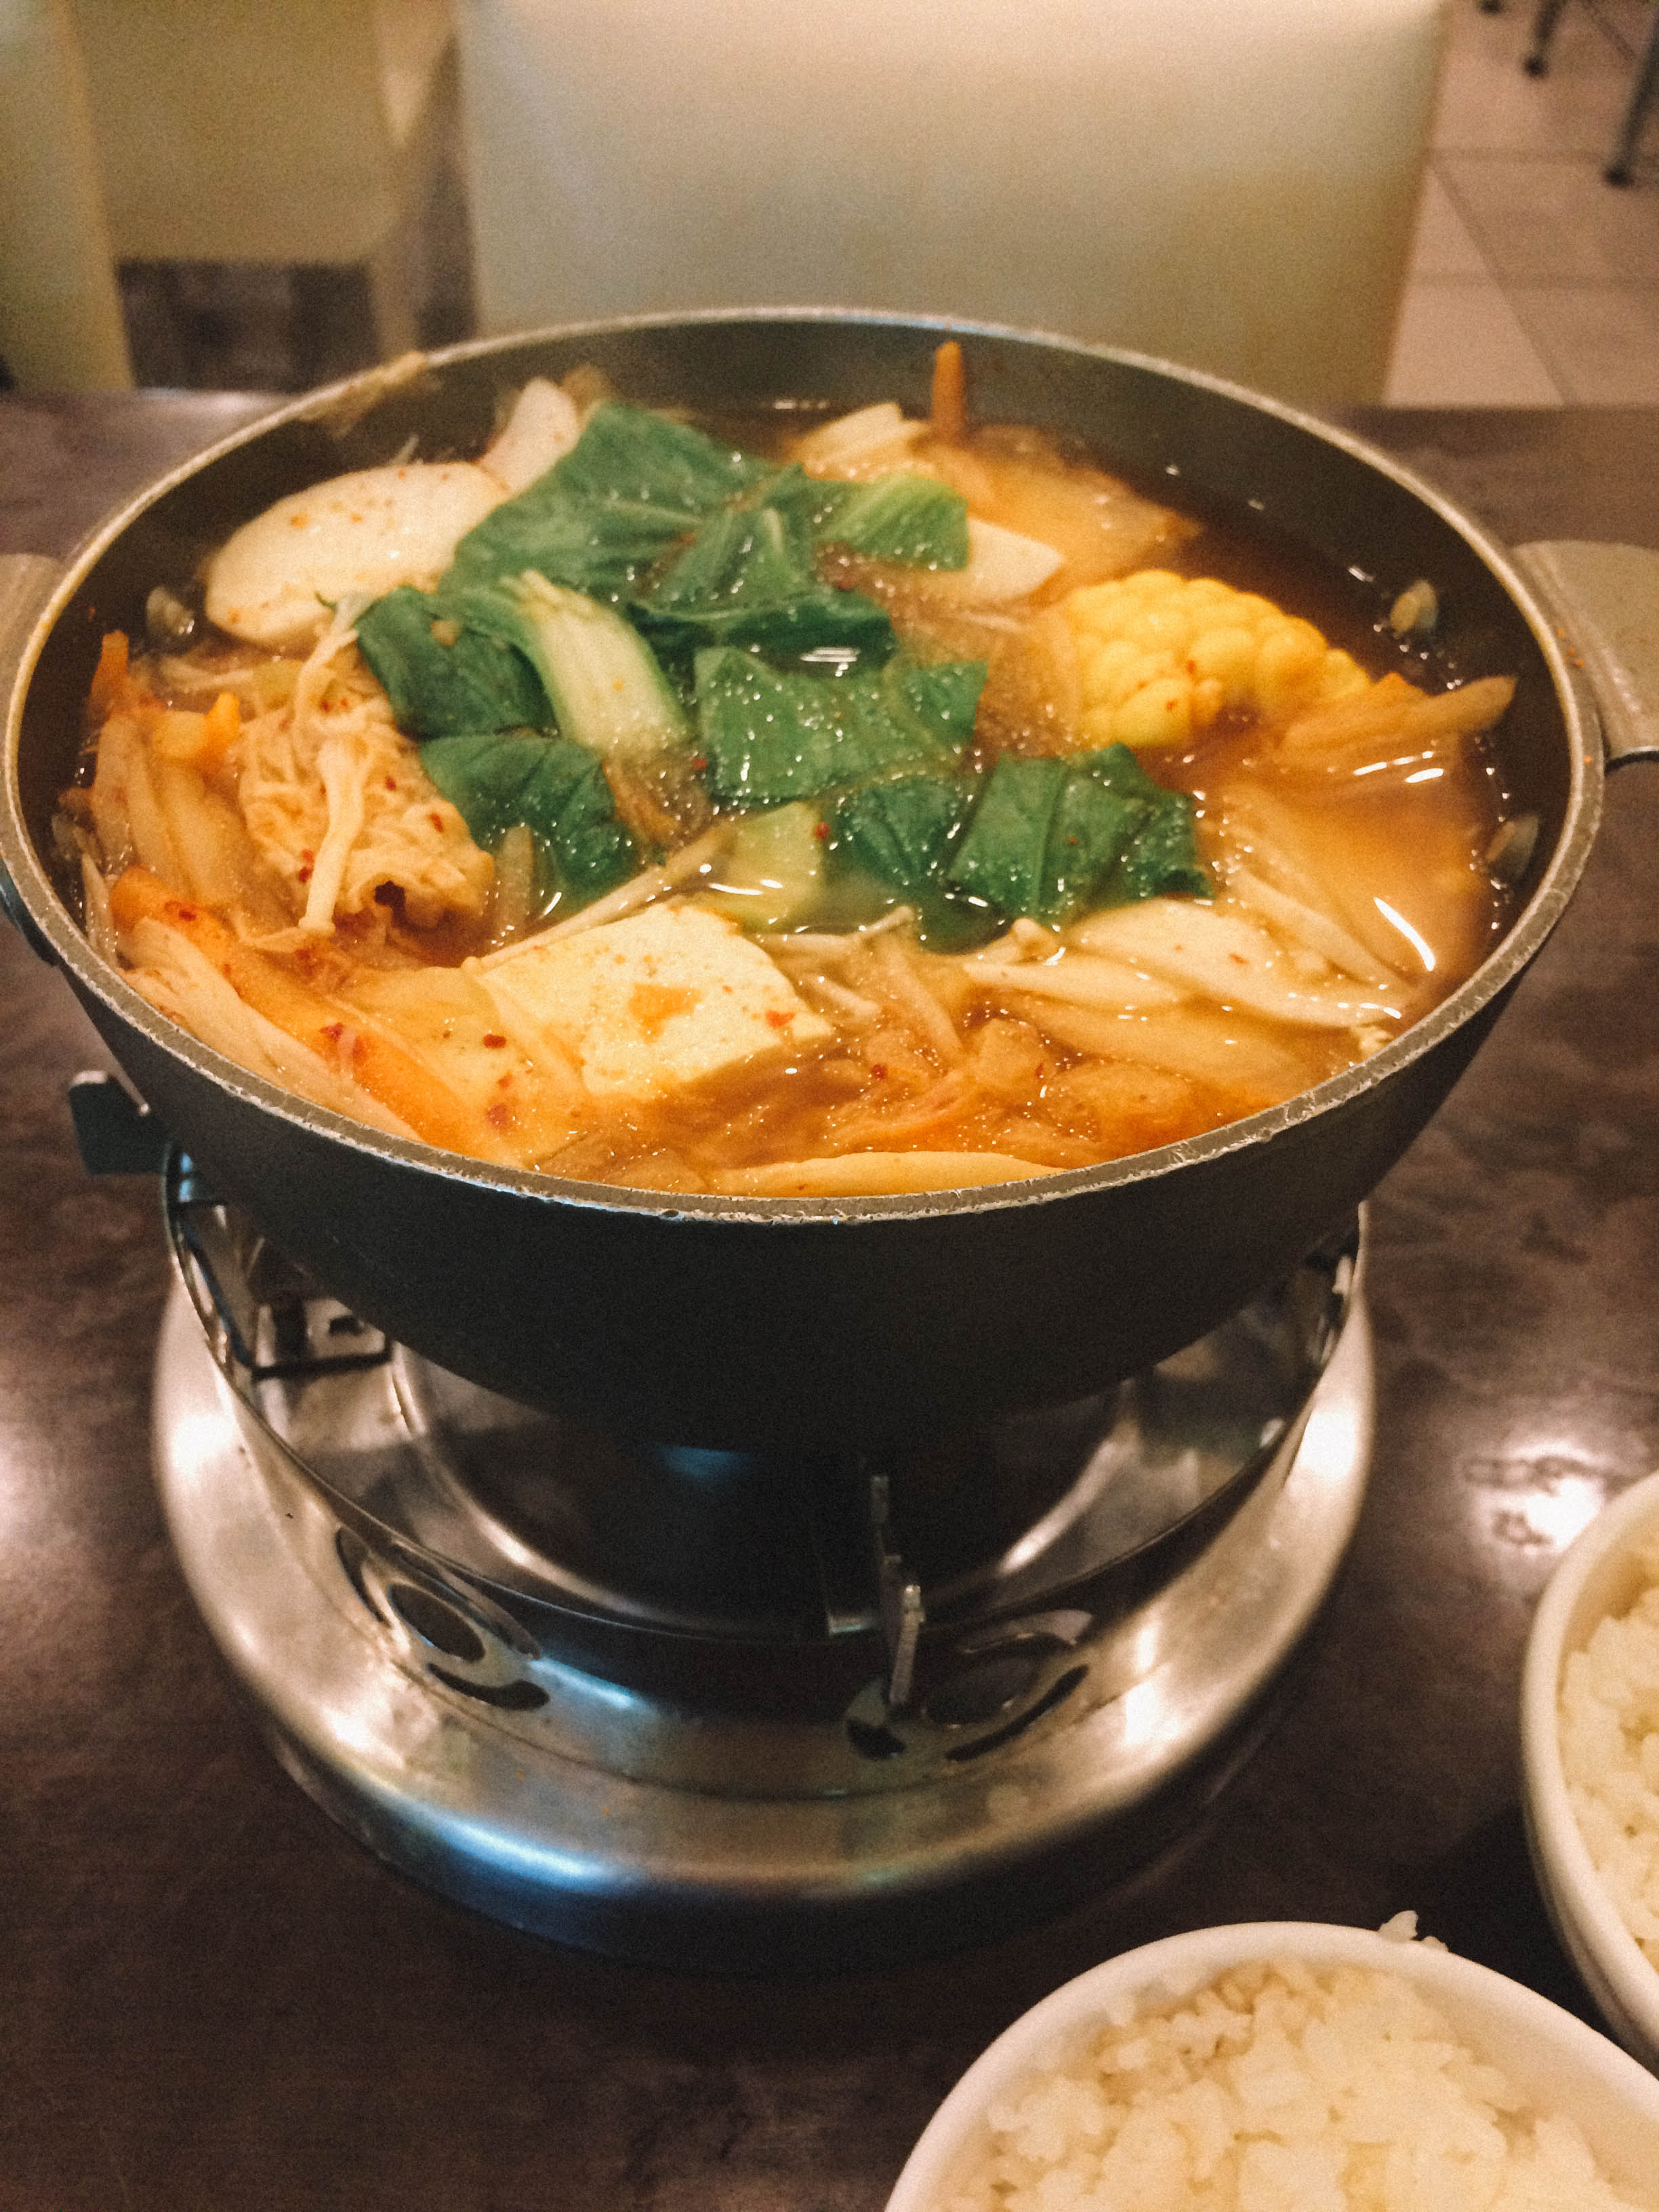 Hot pot at chuan zhen vegetarian